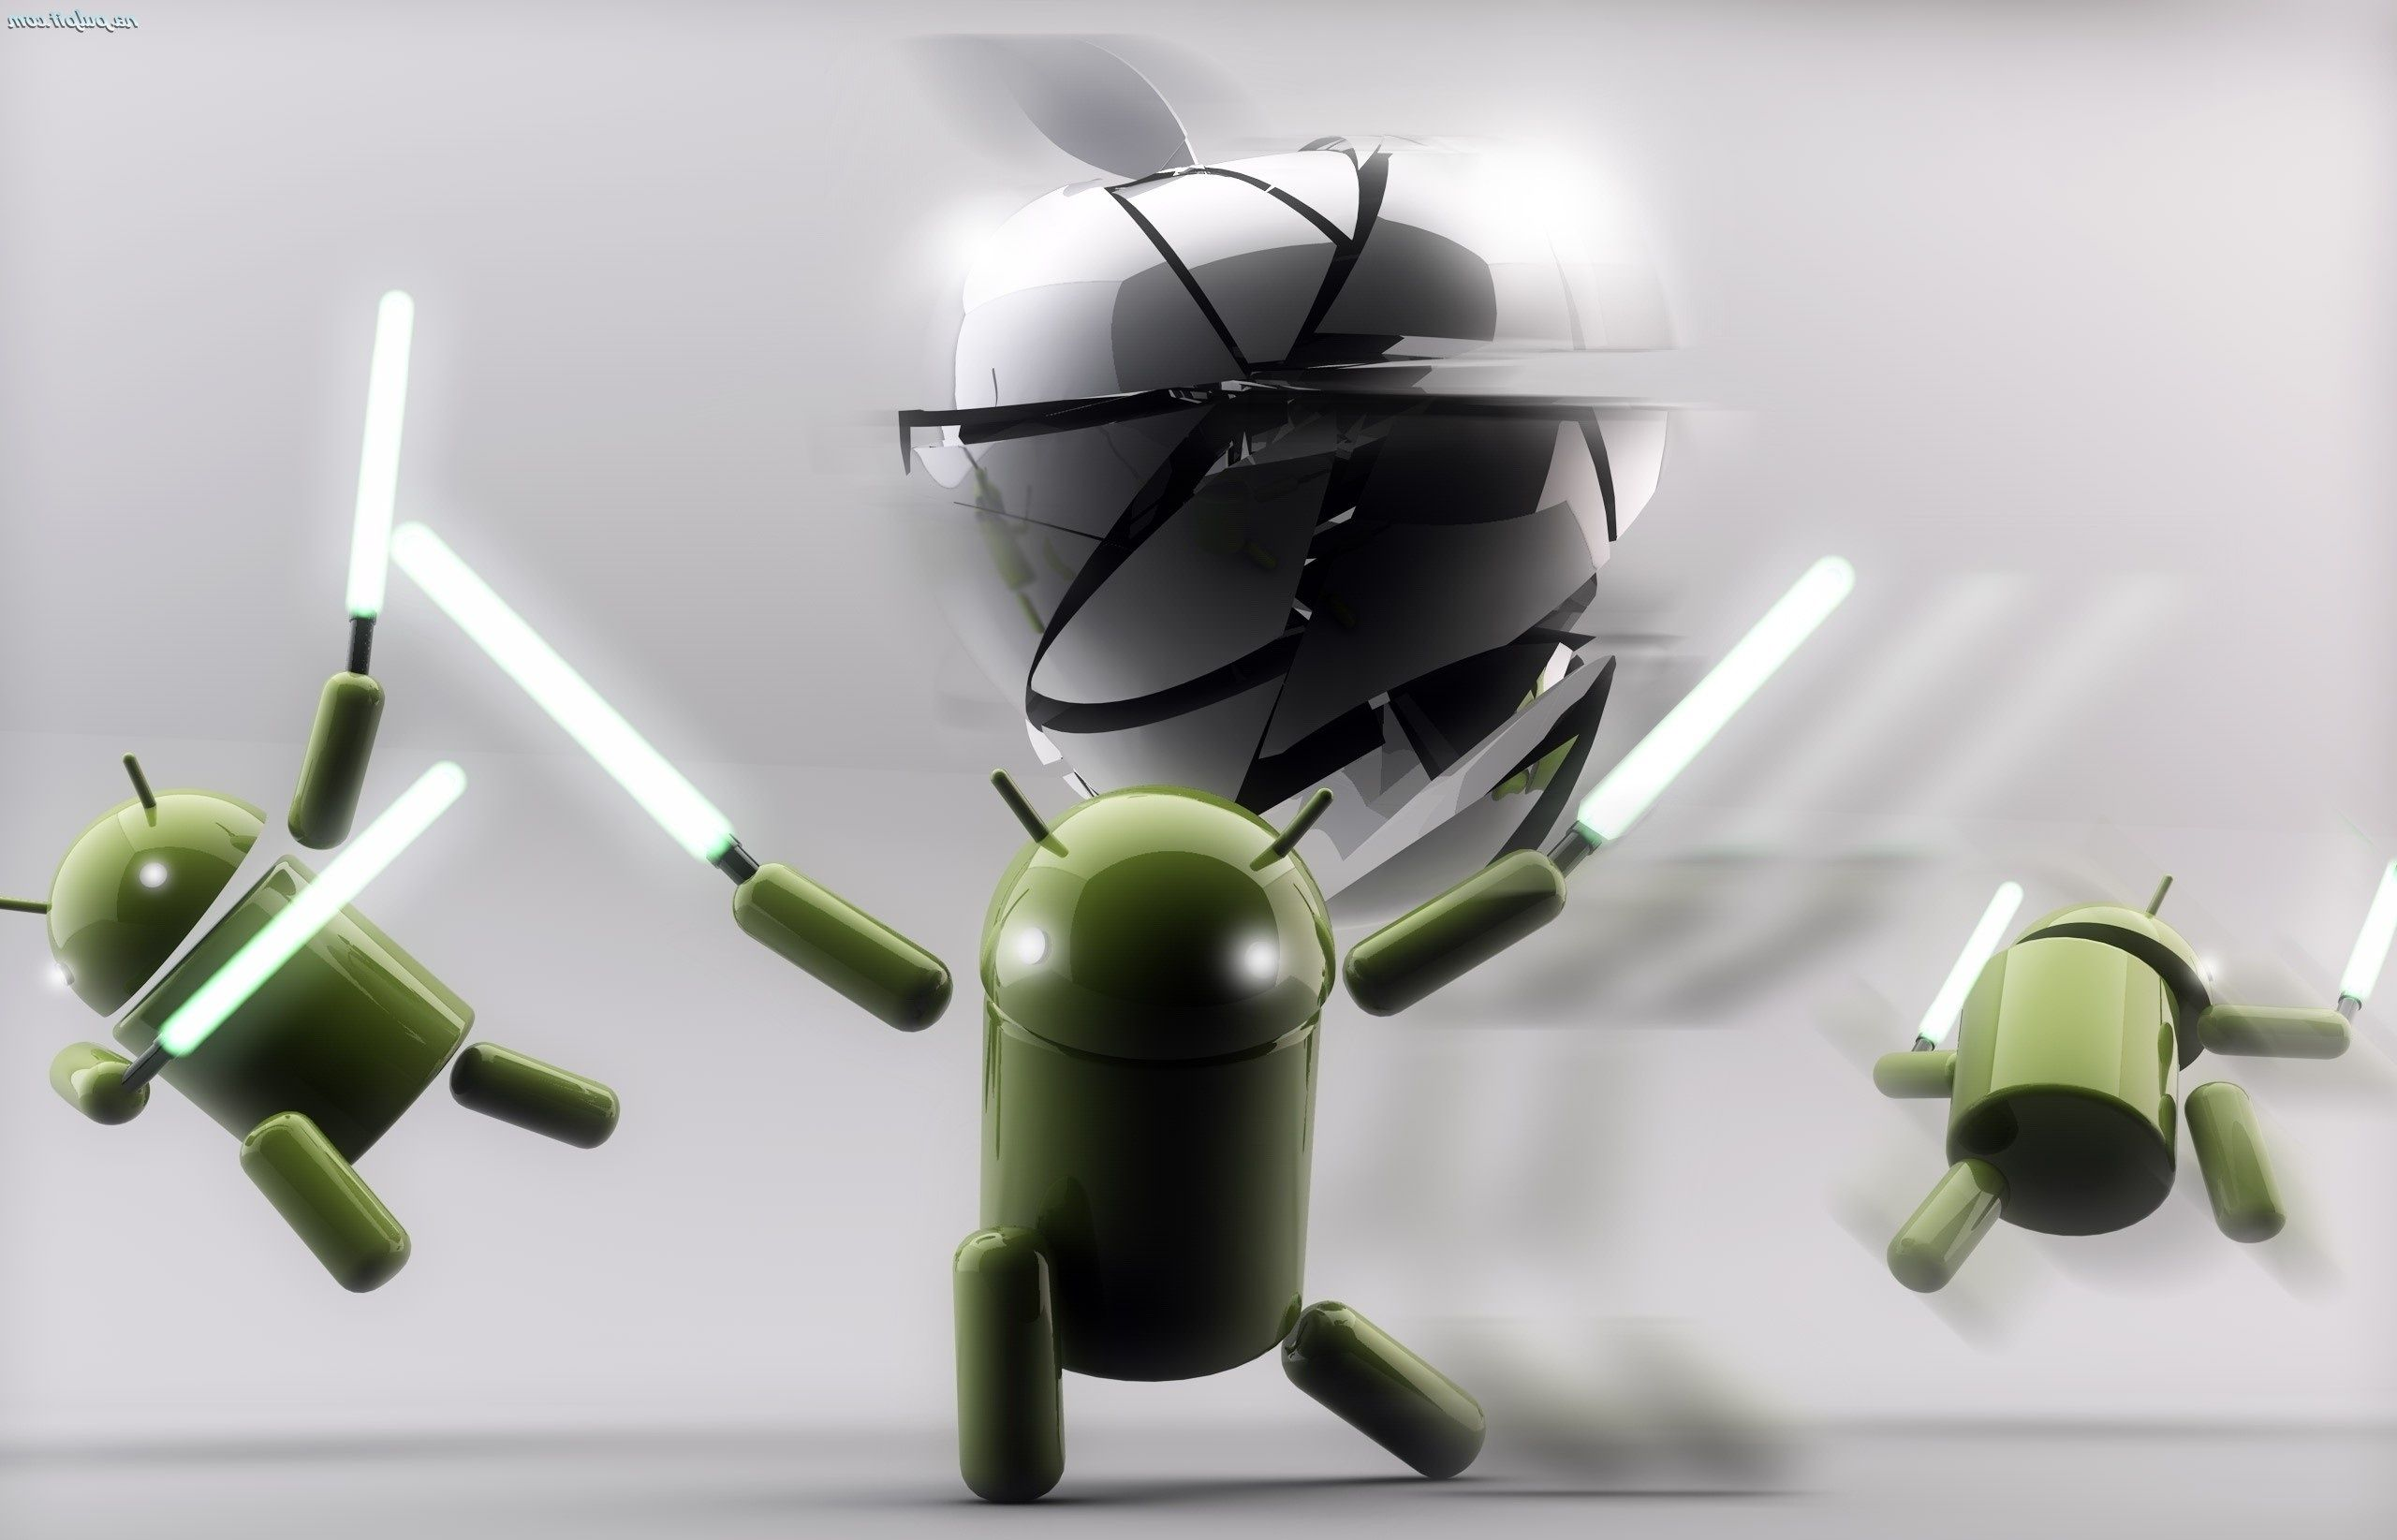 fencing star wars i am your father android wallpaper free download